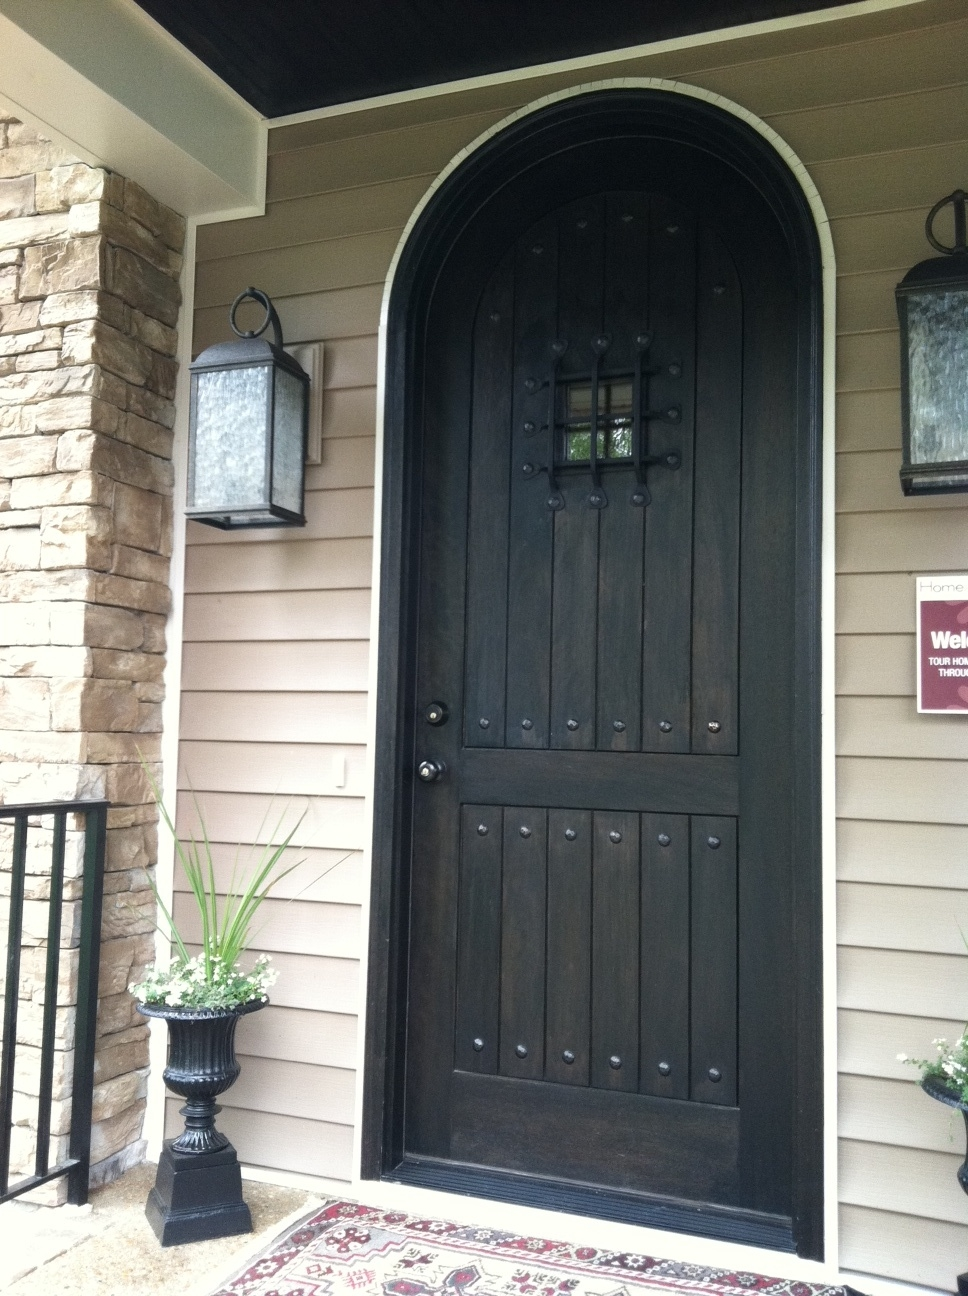 Arched front doors are symbolically called the Gates of Heaven